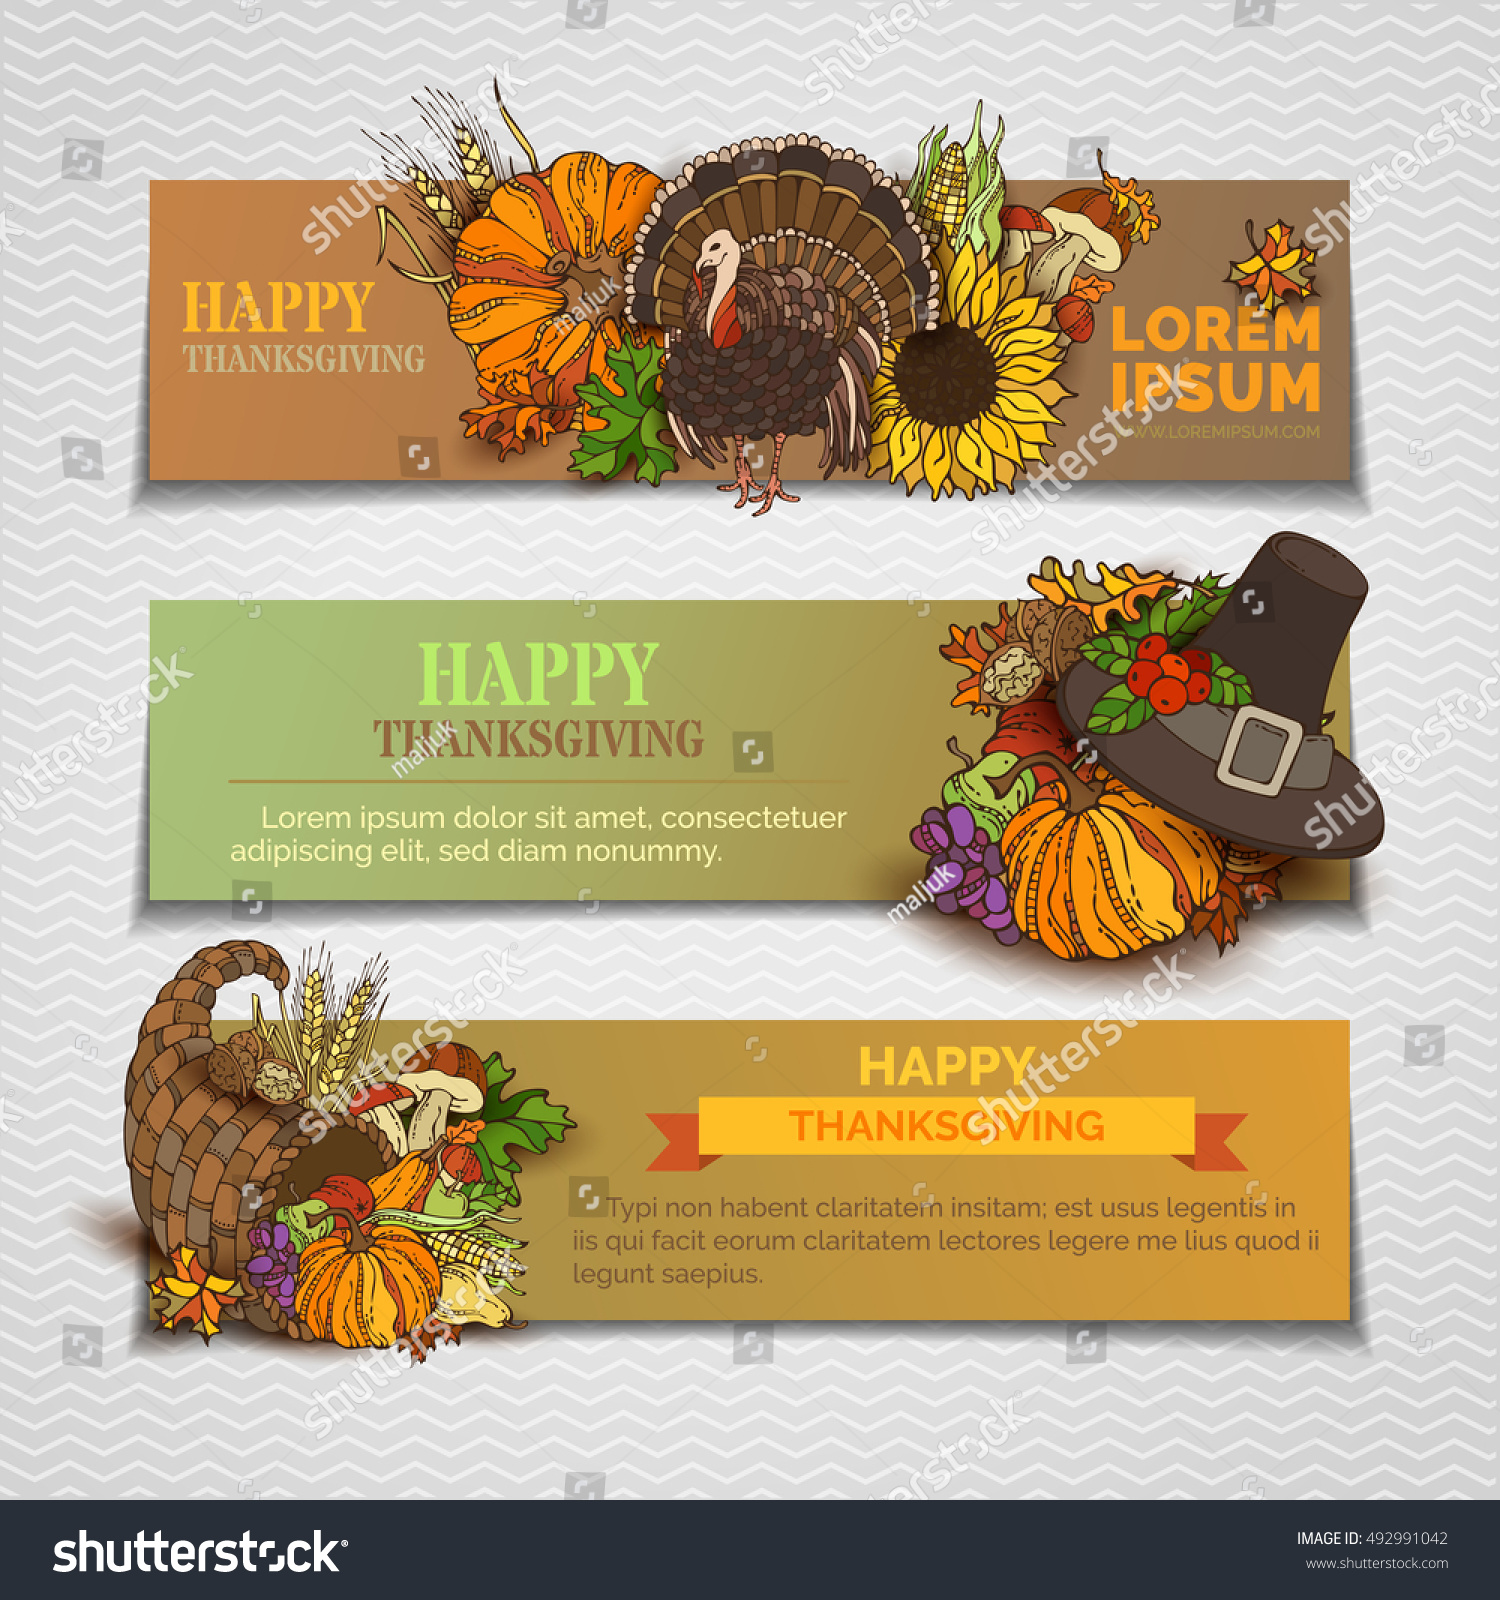 Happy Thanksgiving Horizontal Banners Set Pumpkin Stock. Video Game Signs. Wwii German Lettering. Hepburn Mural Murals. Labels To Buy